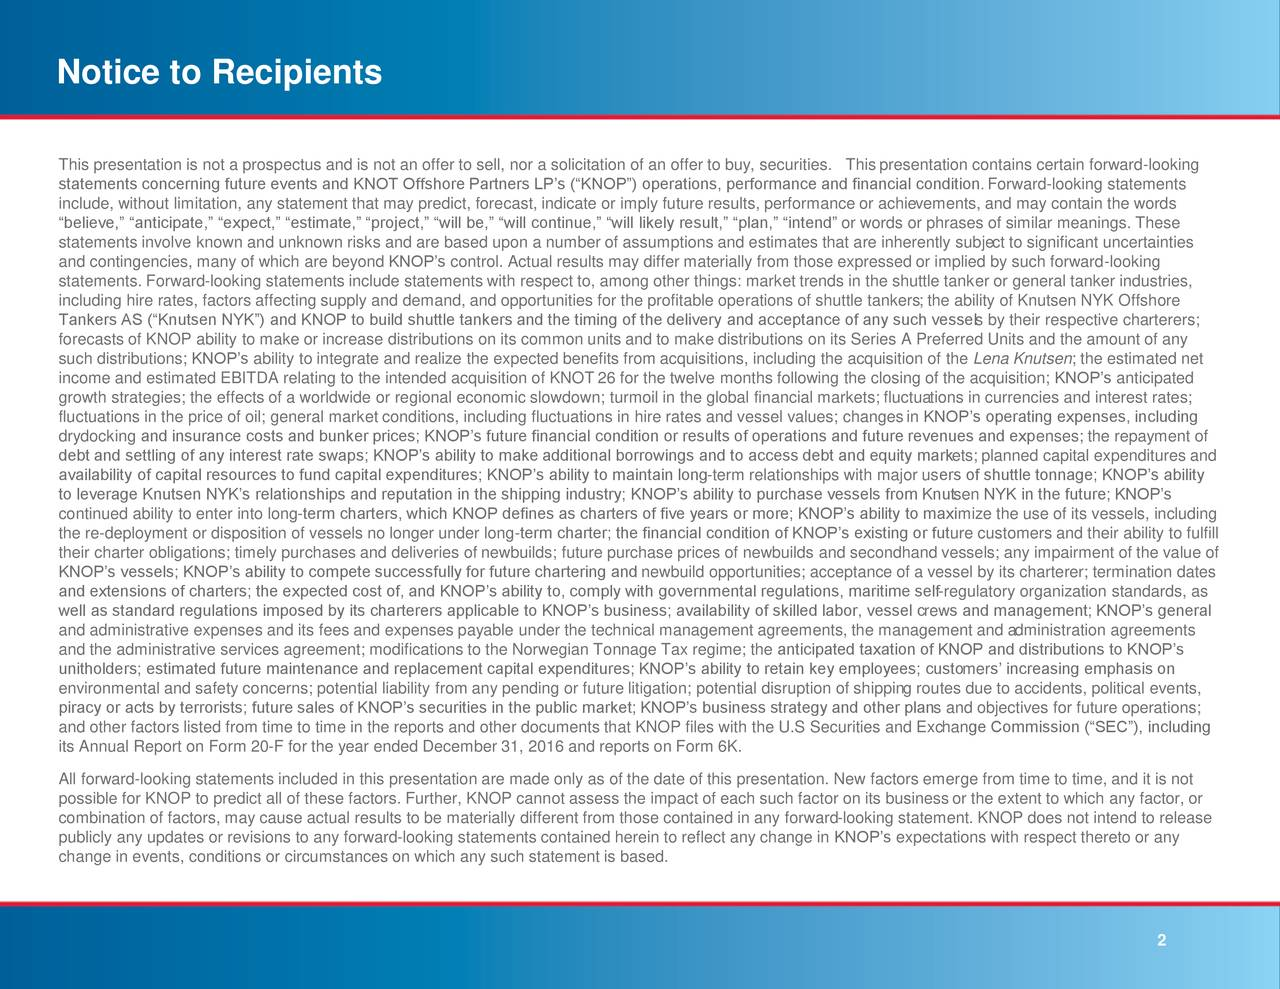 """This presentation is not a prospectus and is not an offer to sell, nor a solicitation of an offer to buy, securities. This presentation contains certain forward-looking statements concerning future events and KNOT Offshore Partners LP's (""""KNOP"""") operations, performance and financial condition.Forward-looking statements include, without limitation, any statement that may predict, forecast, indicate or imply future results, performance or achievements, and may contain the words """"believe,"""" """"anticipate,"""" """"expect,"""" """"estimate,"""" """"project,"""" """"will be,"""" """"will continue,"""" """"will likely result,"""" """"plan,"""" """"intend"""" or words or phrases of similar meanings. These statements involve known and unknown risks and are based upon a number of assumptions and estimates that are inherently subject to significant uncertainties and contingencies, many of which are beyond KNOP's control. Actual results may differ materially from those expressed or implied by such forward-looking statements. Forward-looking statements include statements with respect to, among other things: market trends in the shuttle tanker or general tanker industries, including hire rates, factors affecting supply and demand, and opportunities for the profitable operations of shuttle tankers; the ability of Knutsen NYK Offshore Tankers AS (""""Knutsen NYK"""") and KNOP to build shuttle tankers and the timing of the delivery and acceptance of any such vessels by their respective charterers; forecasts of KNOP ability to make or increase distributions on its common units and to make distributions on its Series A Preferred Units and the amount of any such distributions; KNOP's ability to integrate and realize the expected benefits from acquisitions, including the acquisition of the Lena Knutsen; the estimated net income and estimated EBITDA relating to the intended acquisition of KNOT 26 for the twelve months following the closing of the acquisition; KNOP's anticipated growth strategies; the effects of a worldwide or regional economic sl"""